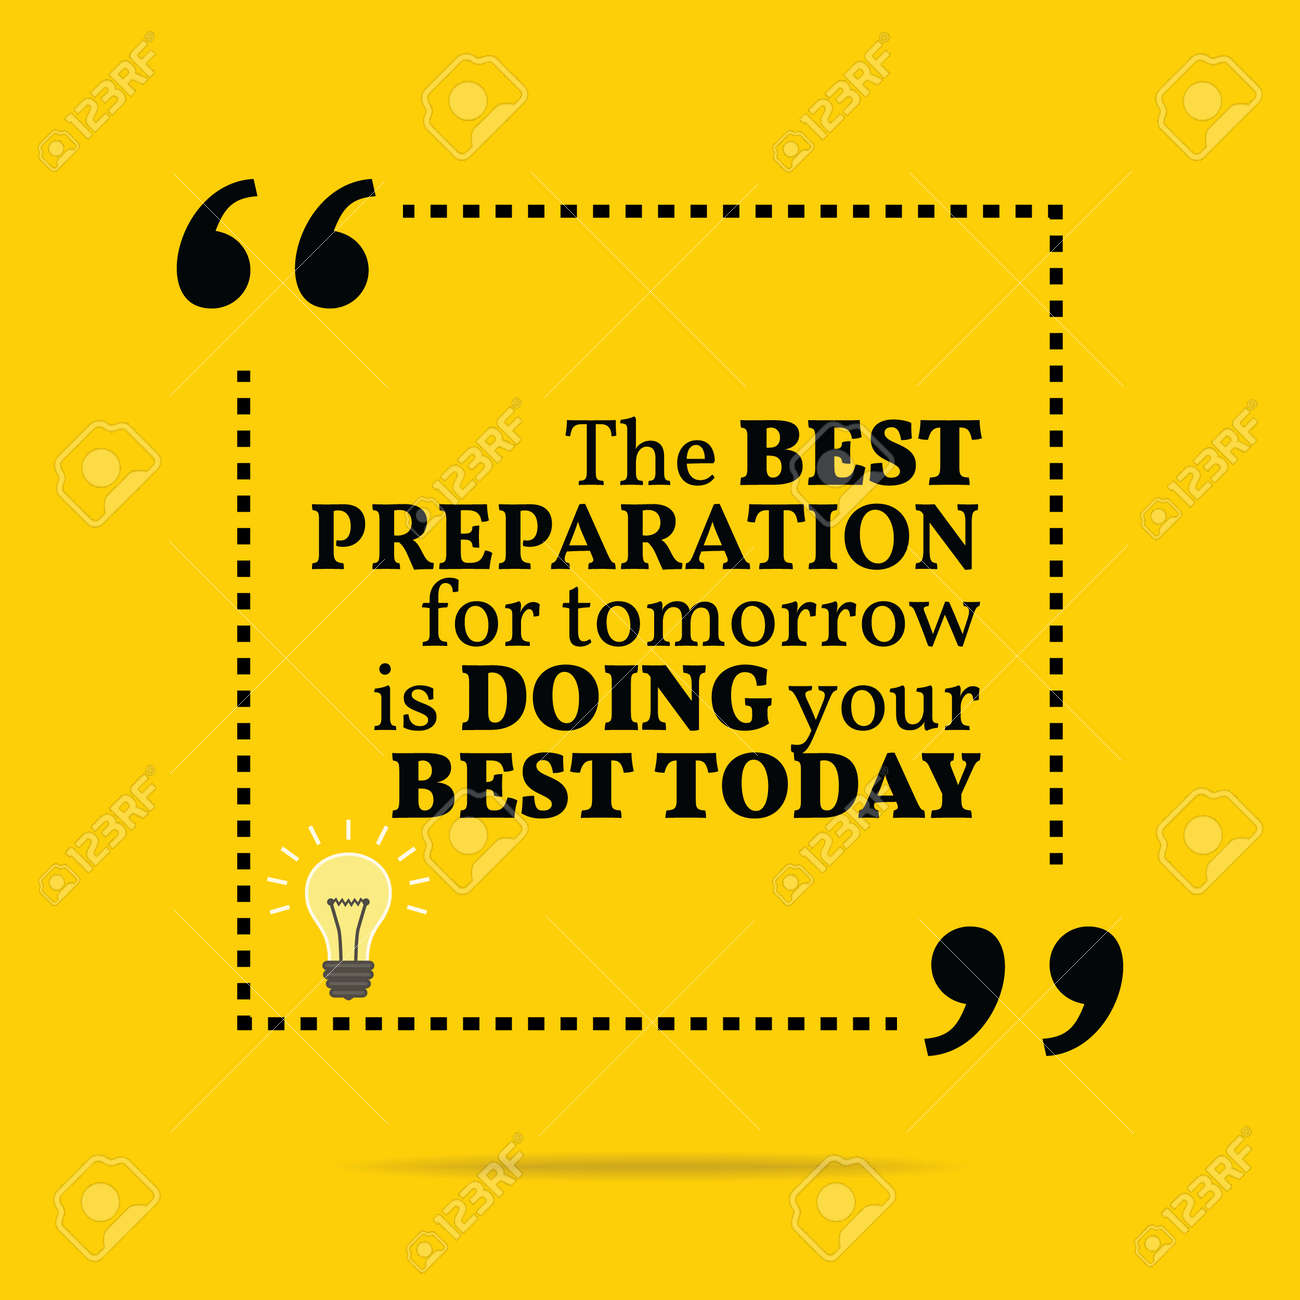 motivational speech cliparts stock vector and royalty motivational speech inspirational motivational quote the best preparation for tomorrow is doing your best